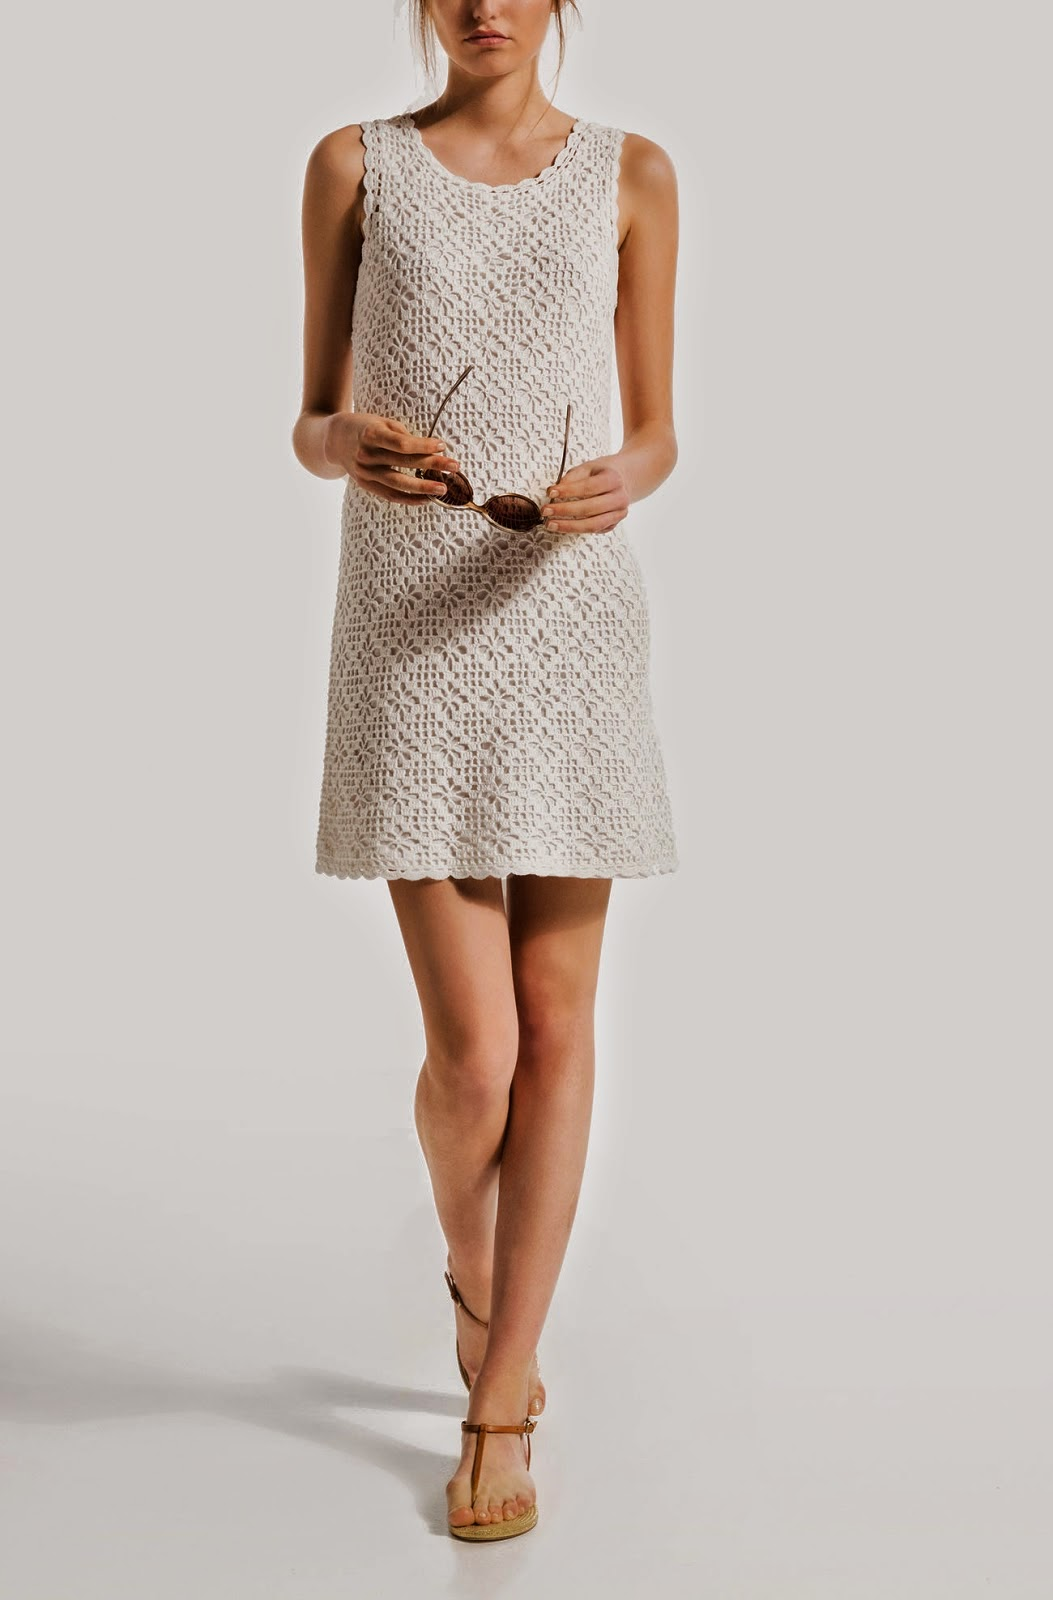 Crochet Patterns Dress : ... to Try: Free Crochet Pattern for Classic Casual and Chic Summer Dress